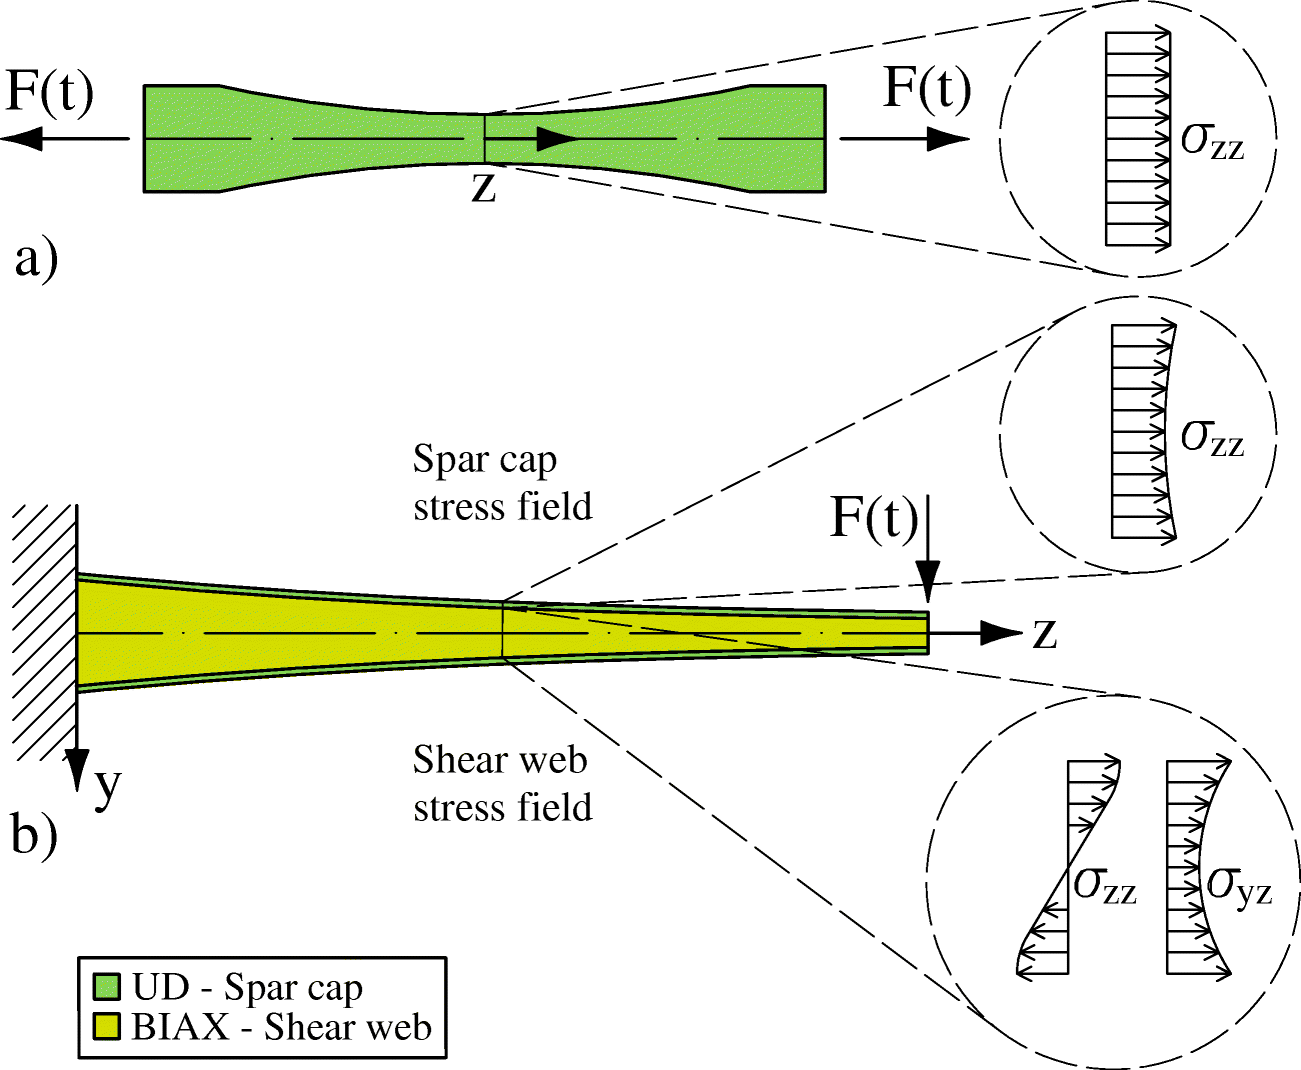 An Improved Sub Component Fatigue Testing Method For Material Mechanics Shear Force And Bending Moment Diagrams Using Matlab Open Image In New Window